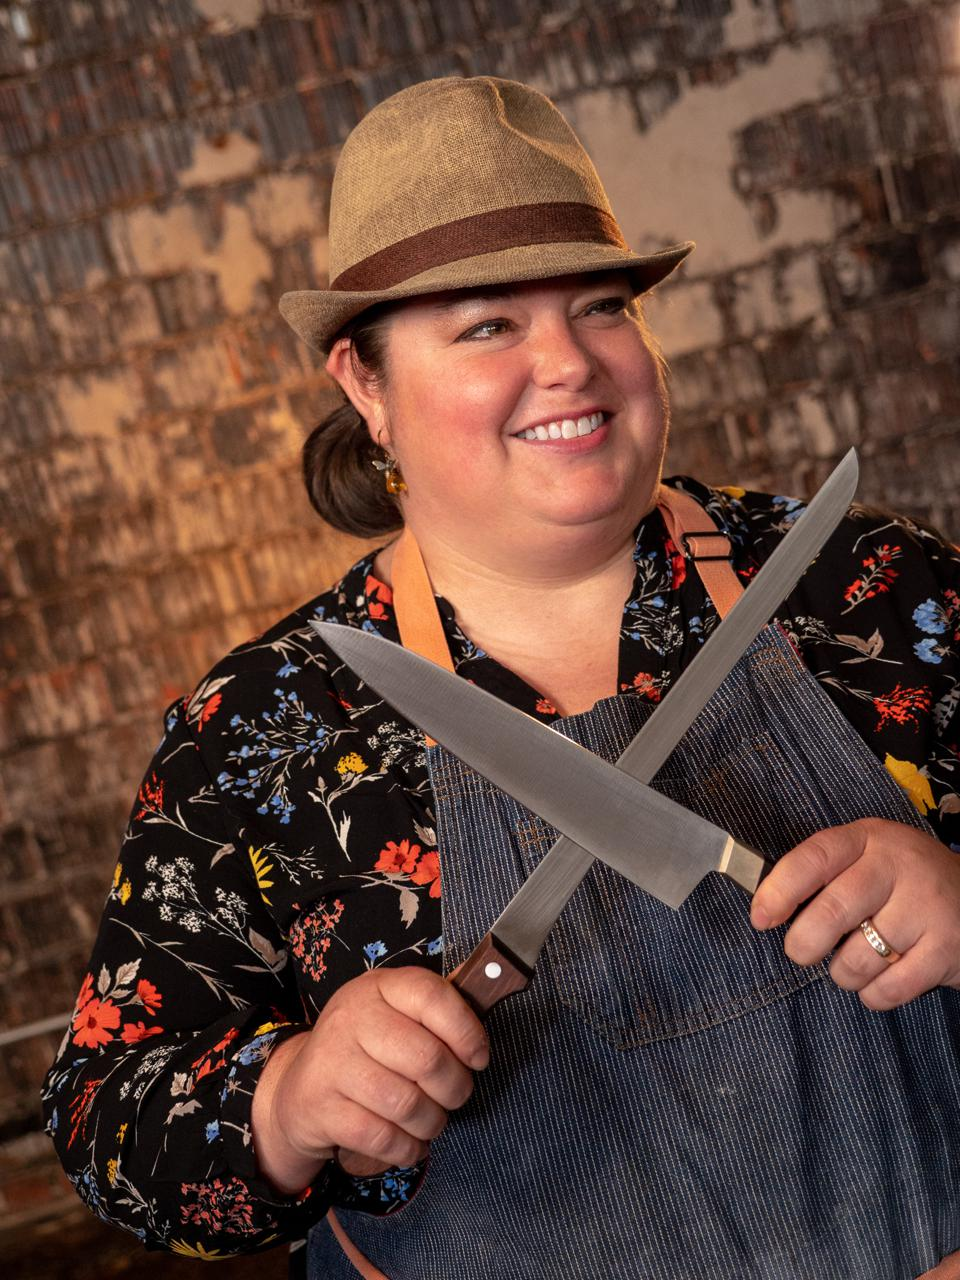 a woman holding two knives